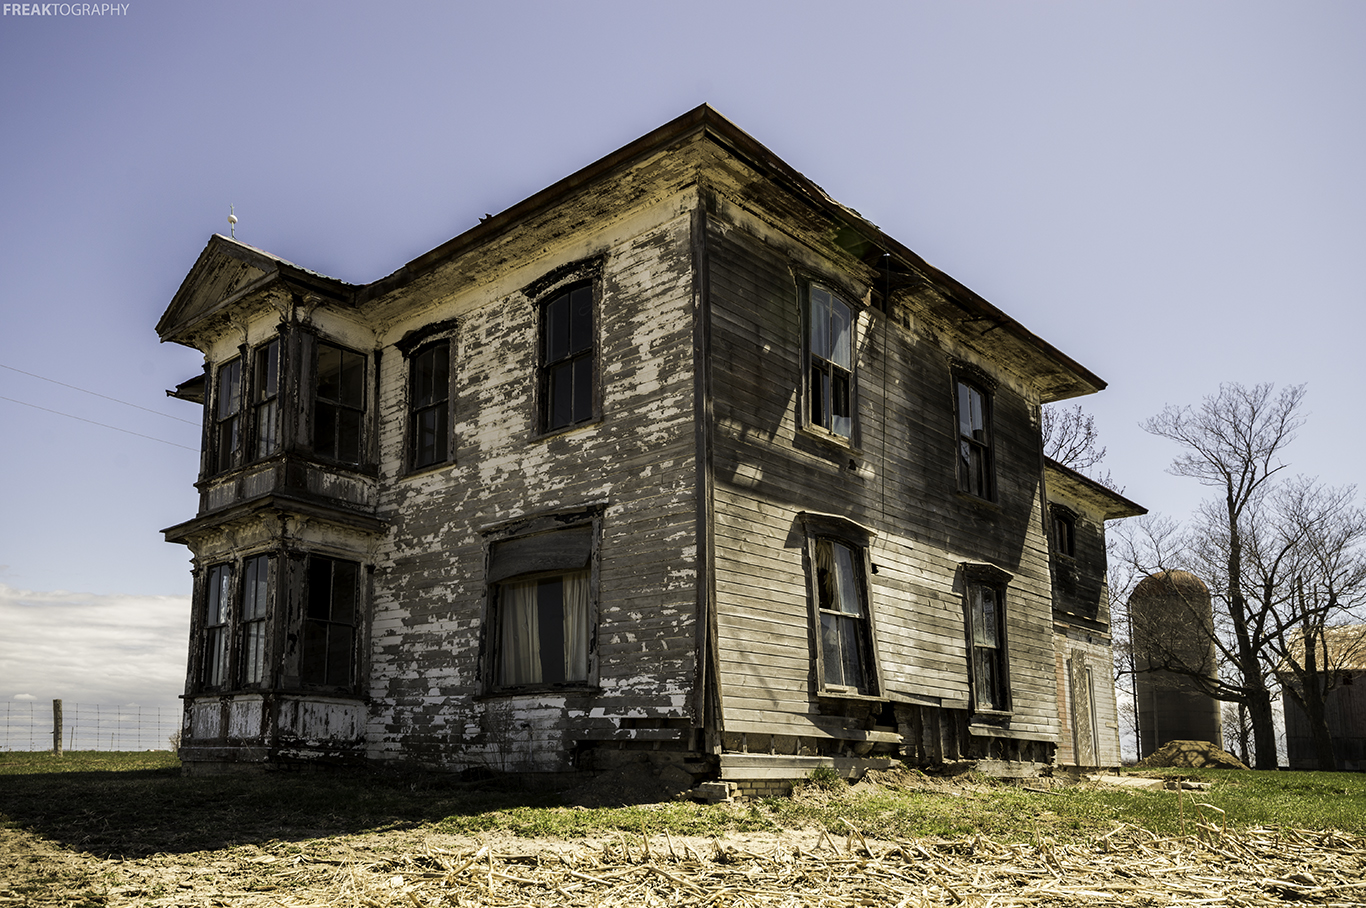 20 Photos Of Creepy Old Abandoned Houses